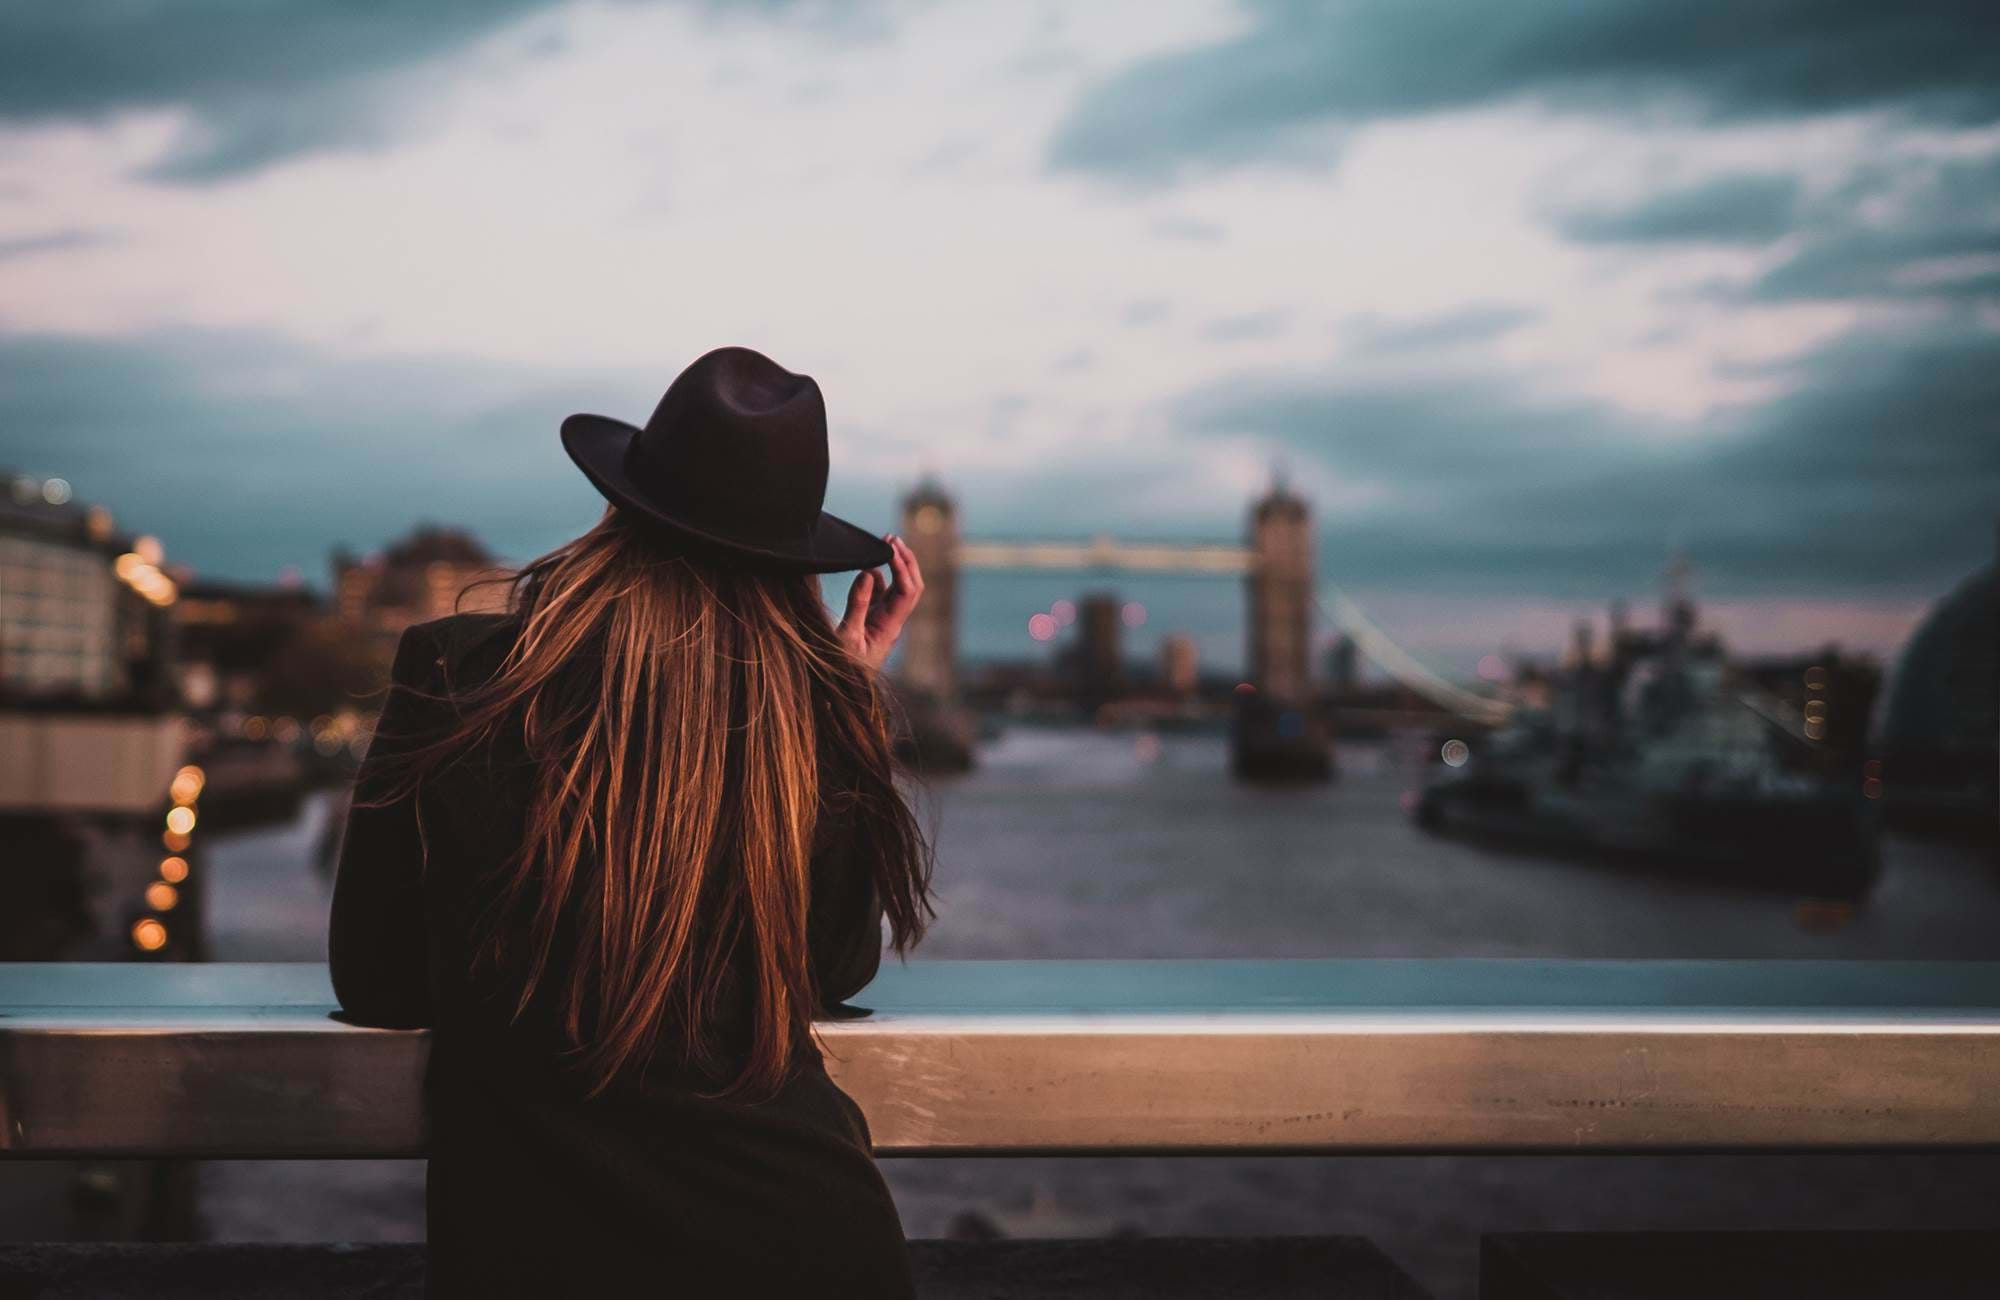 london-river-thames-student-girl-with-hat